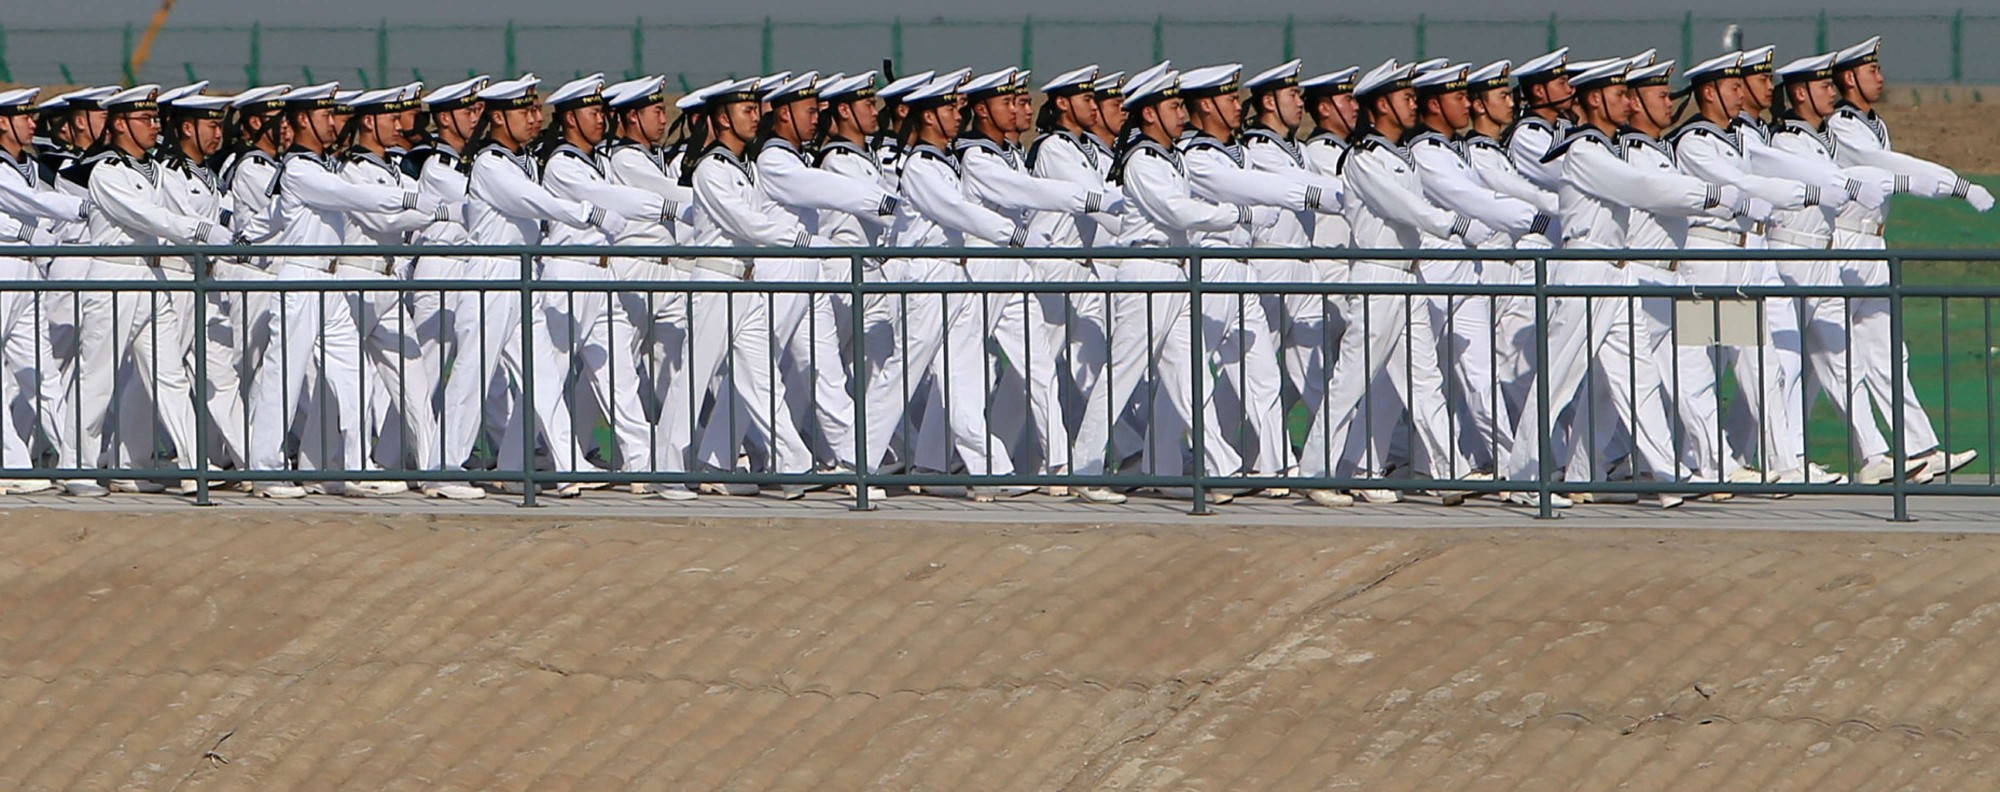 A march by the PLA navy. Photo: Reuters